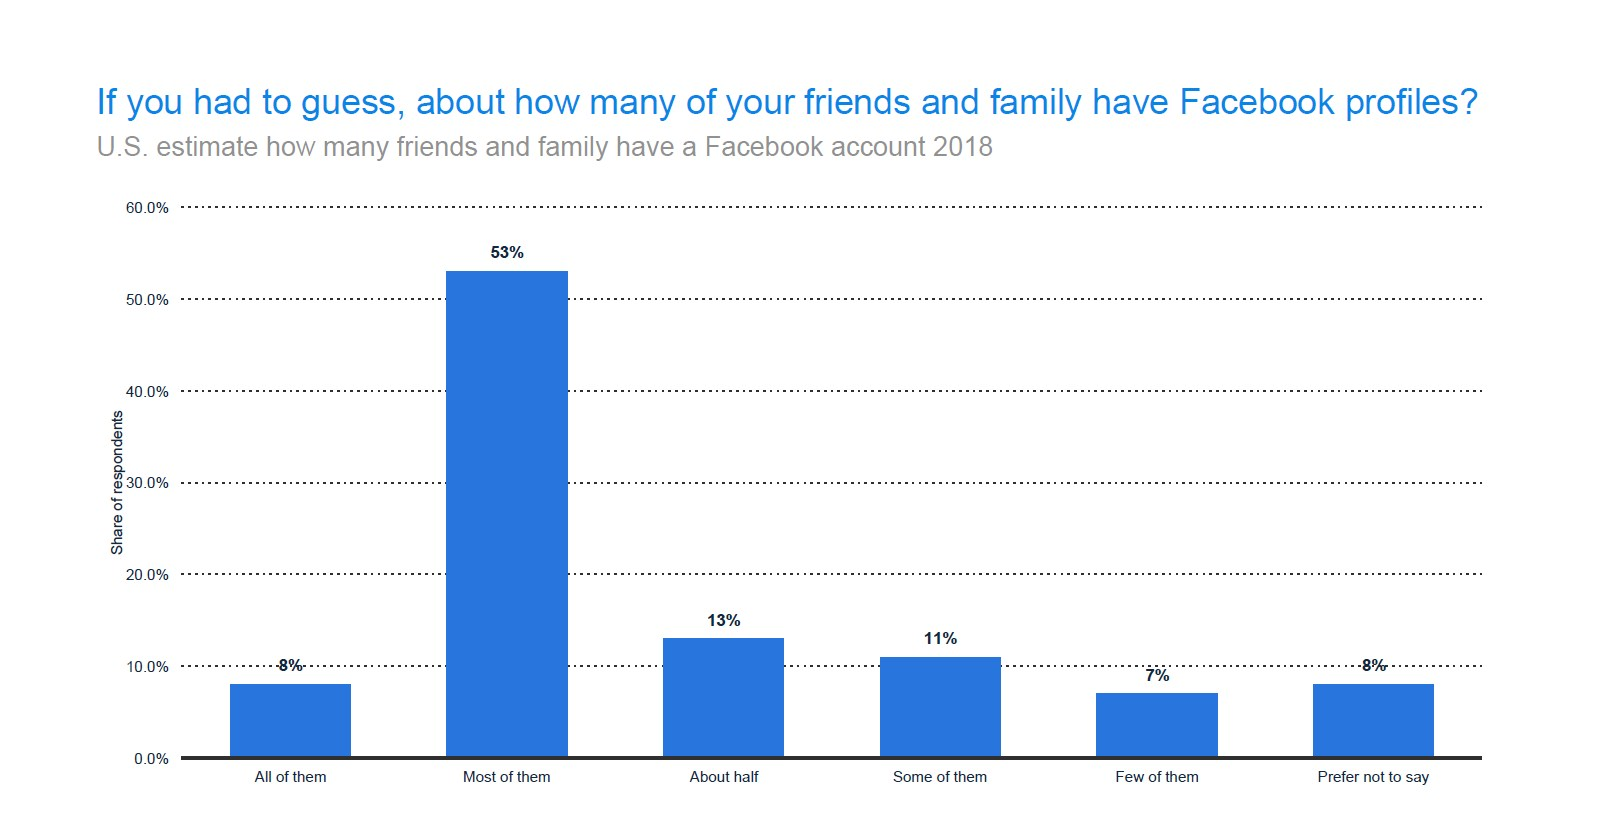 Most Americans believe that their friends and family use Facebook